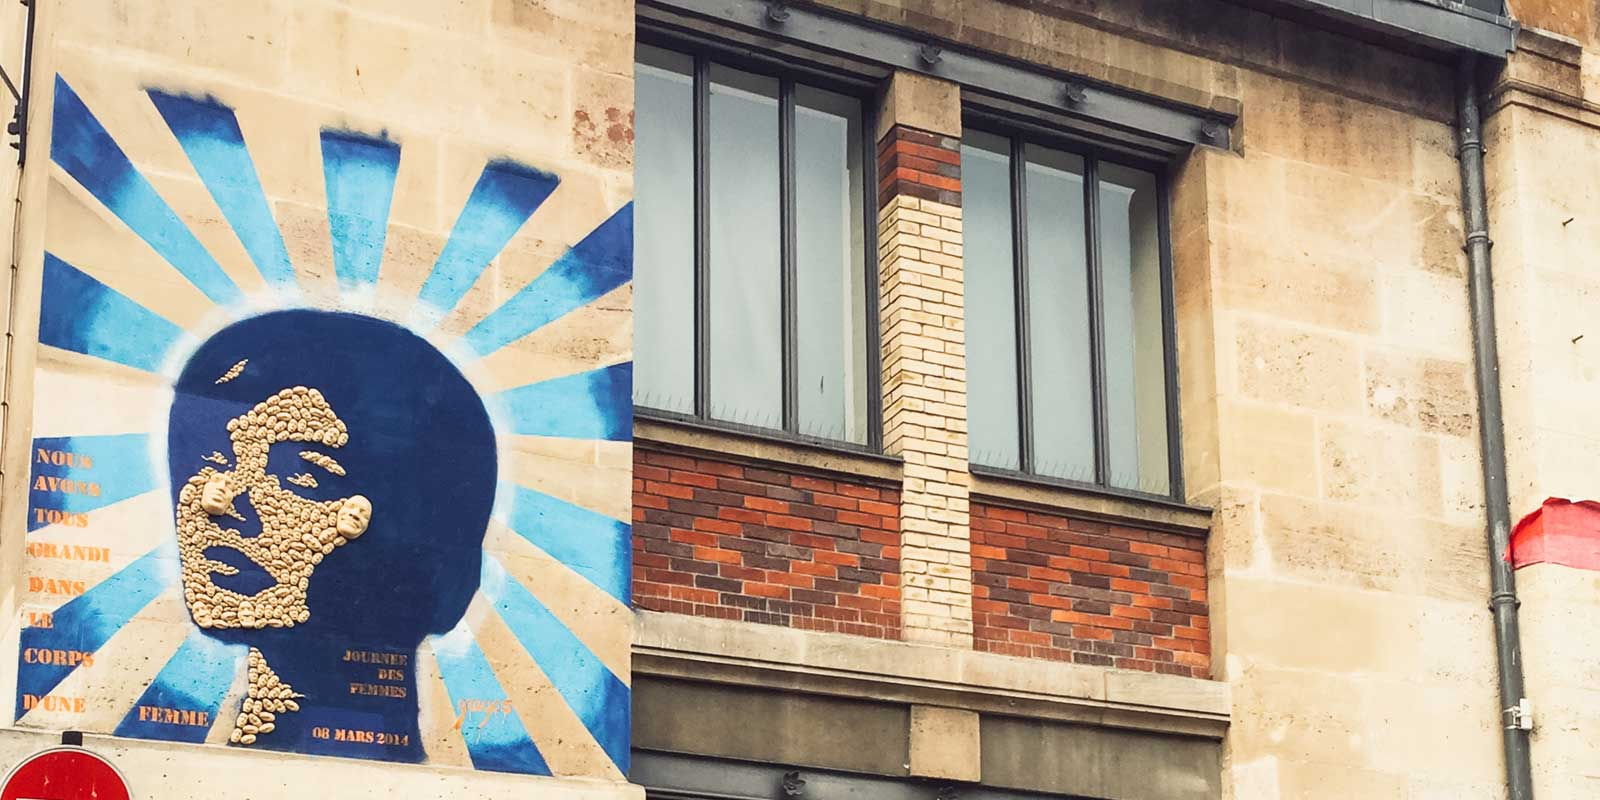 Street art on a building showing a silhouette of a woman's face made from smaller faces, with blue rays in the background.